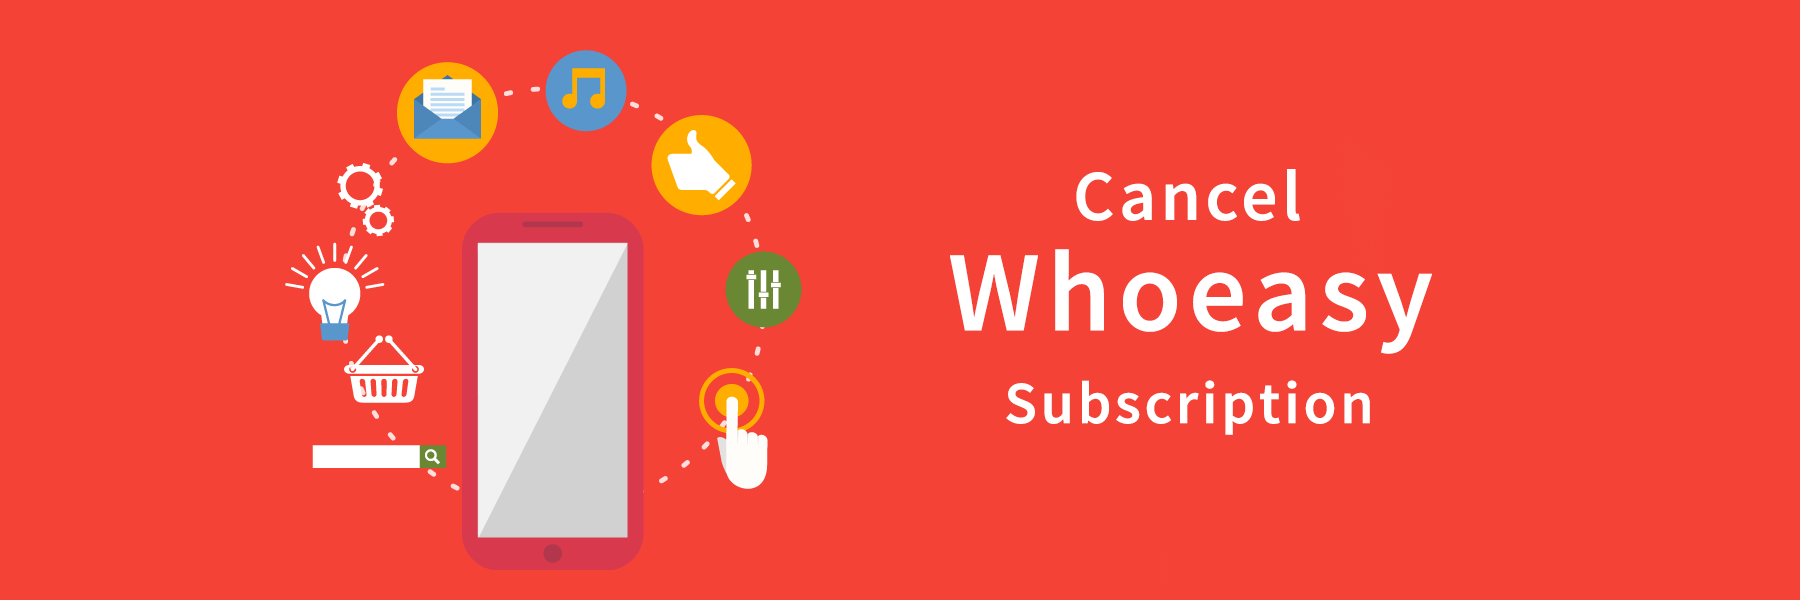 Whoeasy Cancel Subscription